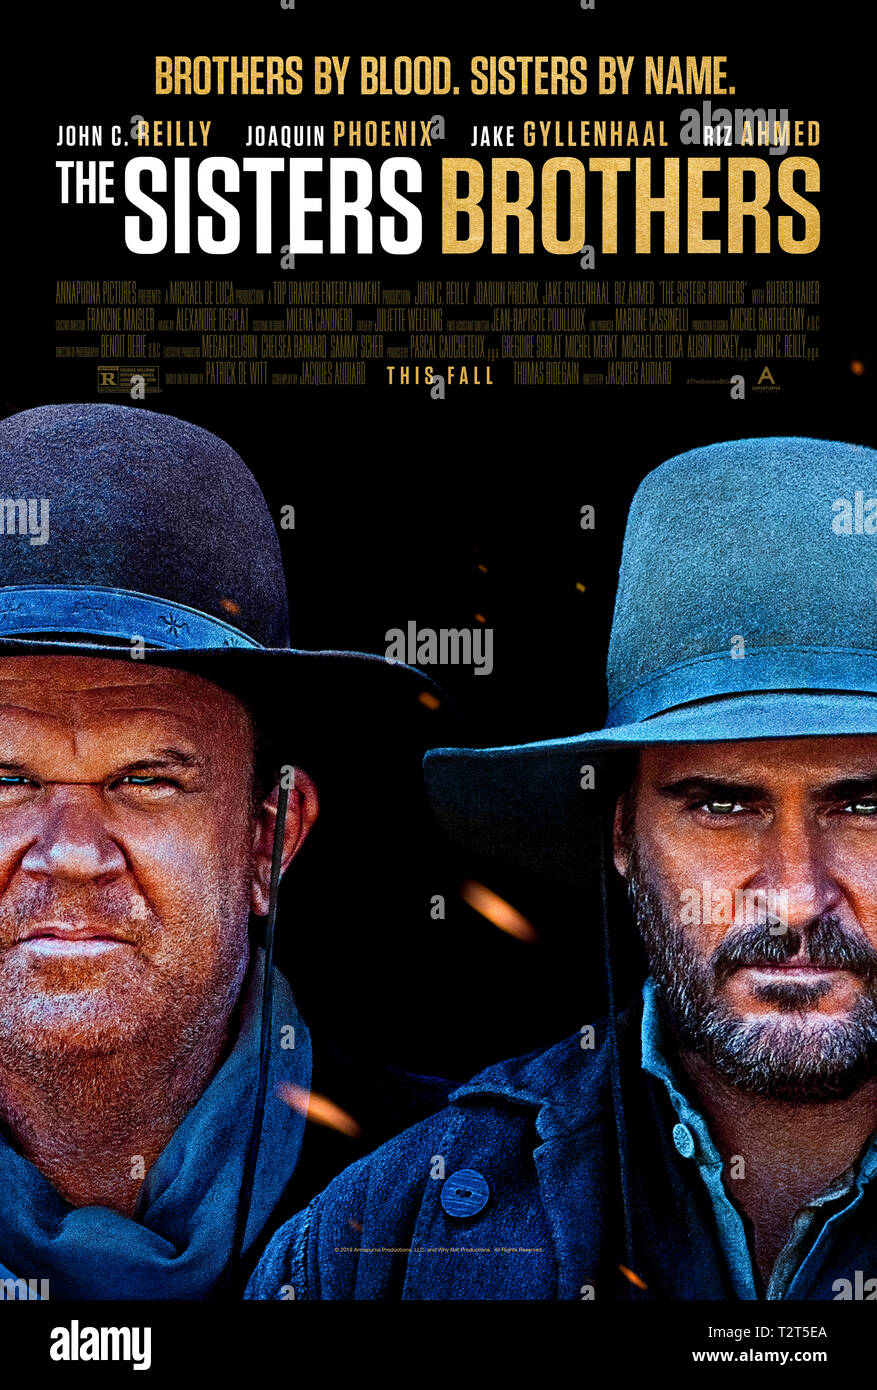 Le sorelle fratelli (2018) diretto da Jacques Audiard e interpretato da John C. Reilly, Joaquin Phoenix e Jake Gyllenhaal. Due assassini perseguire un gold prospector in tutta l'America. Immagini Stock